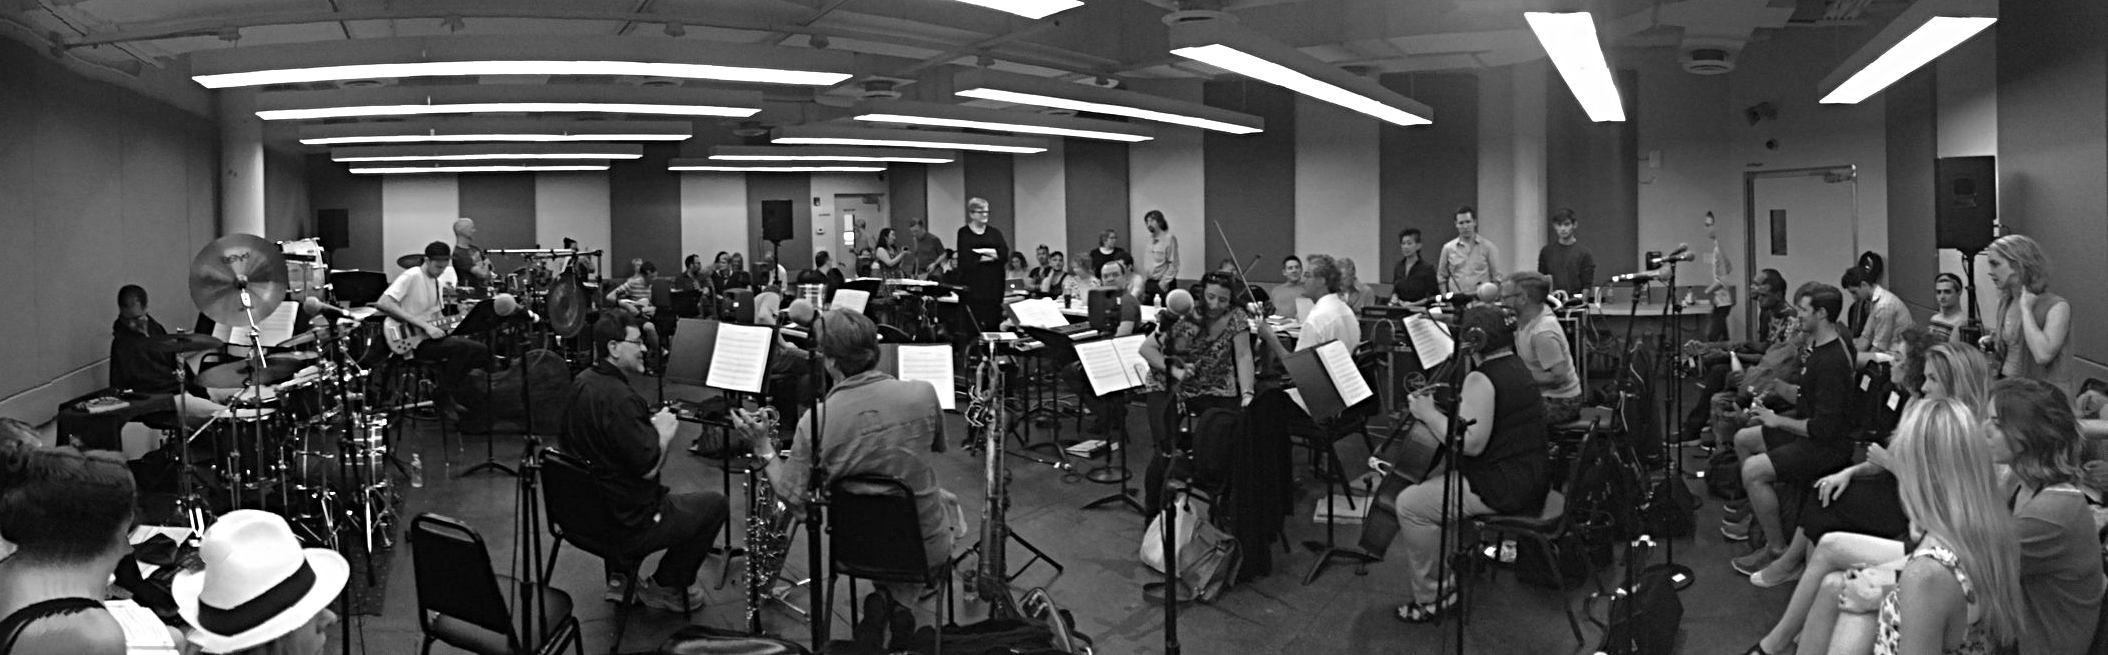 Cats sitzprobe Carroll Music, NY, NY July 27, 2016  photo credit : Chrstopher Gurr